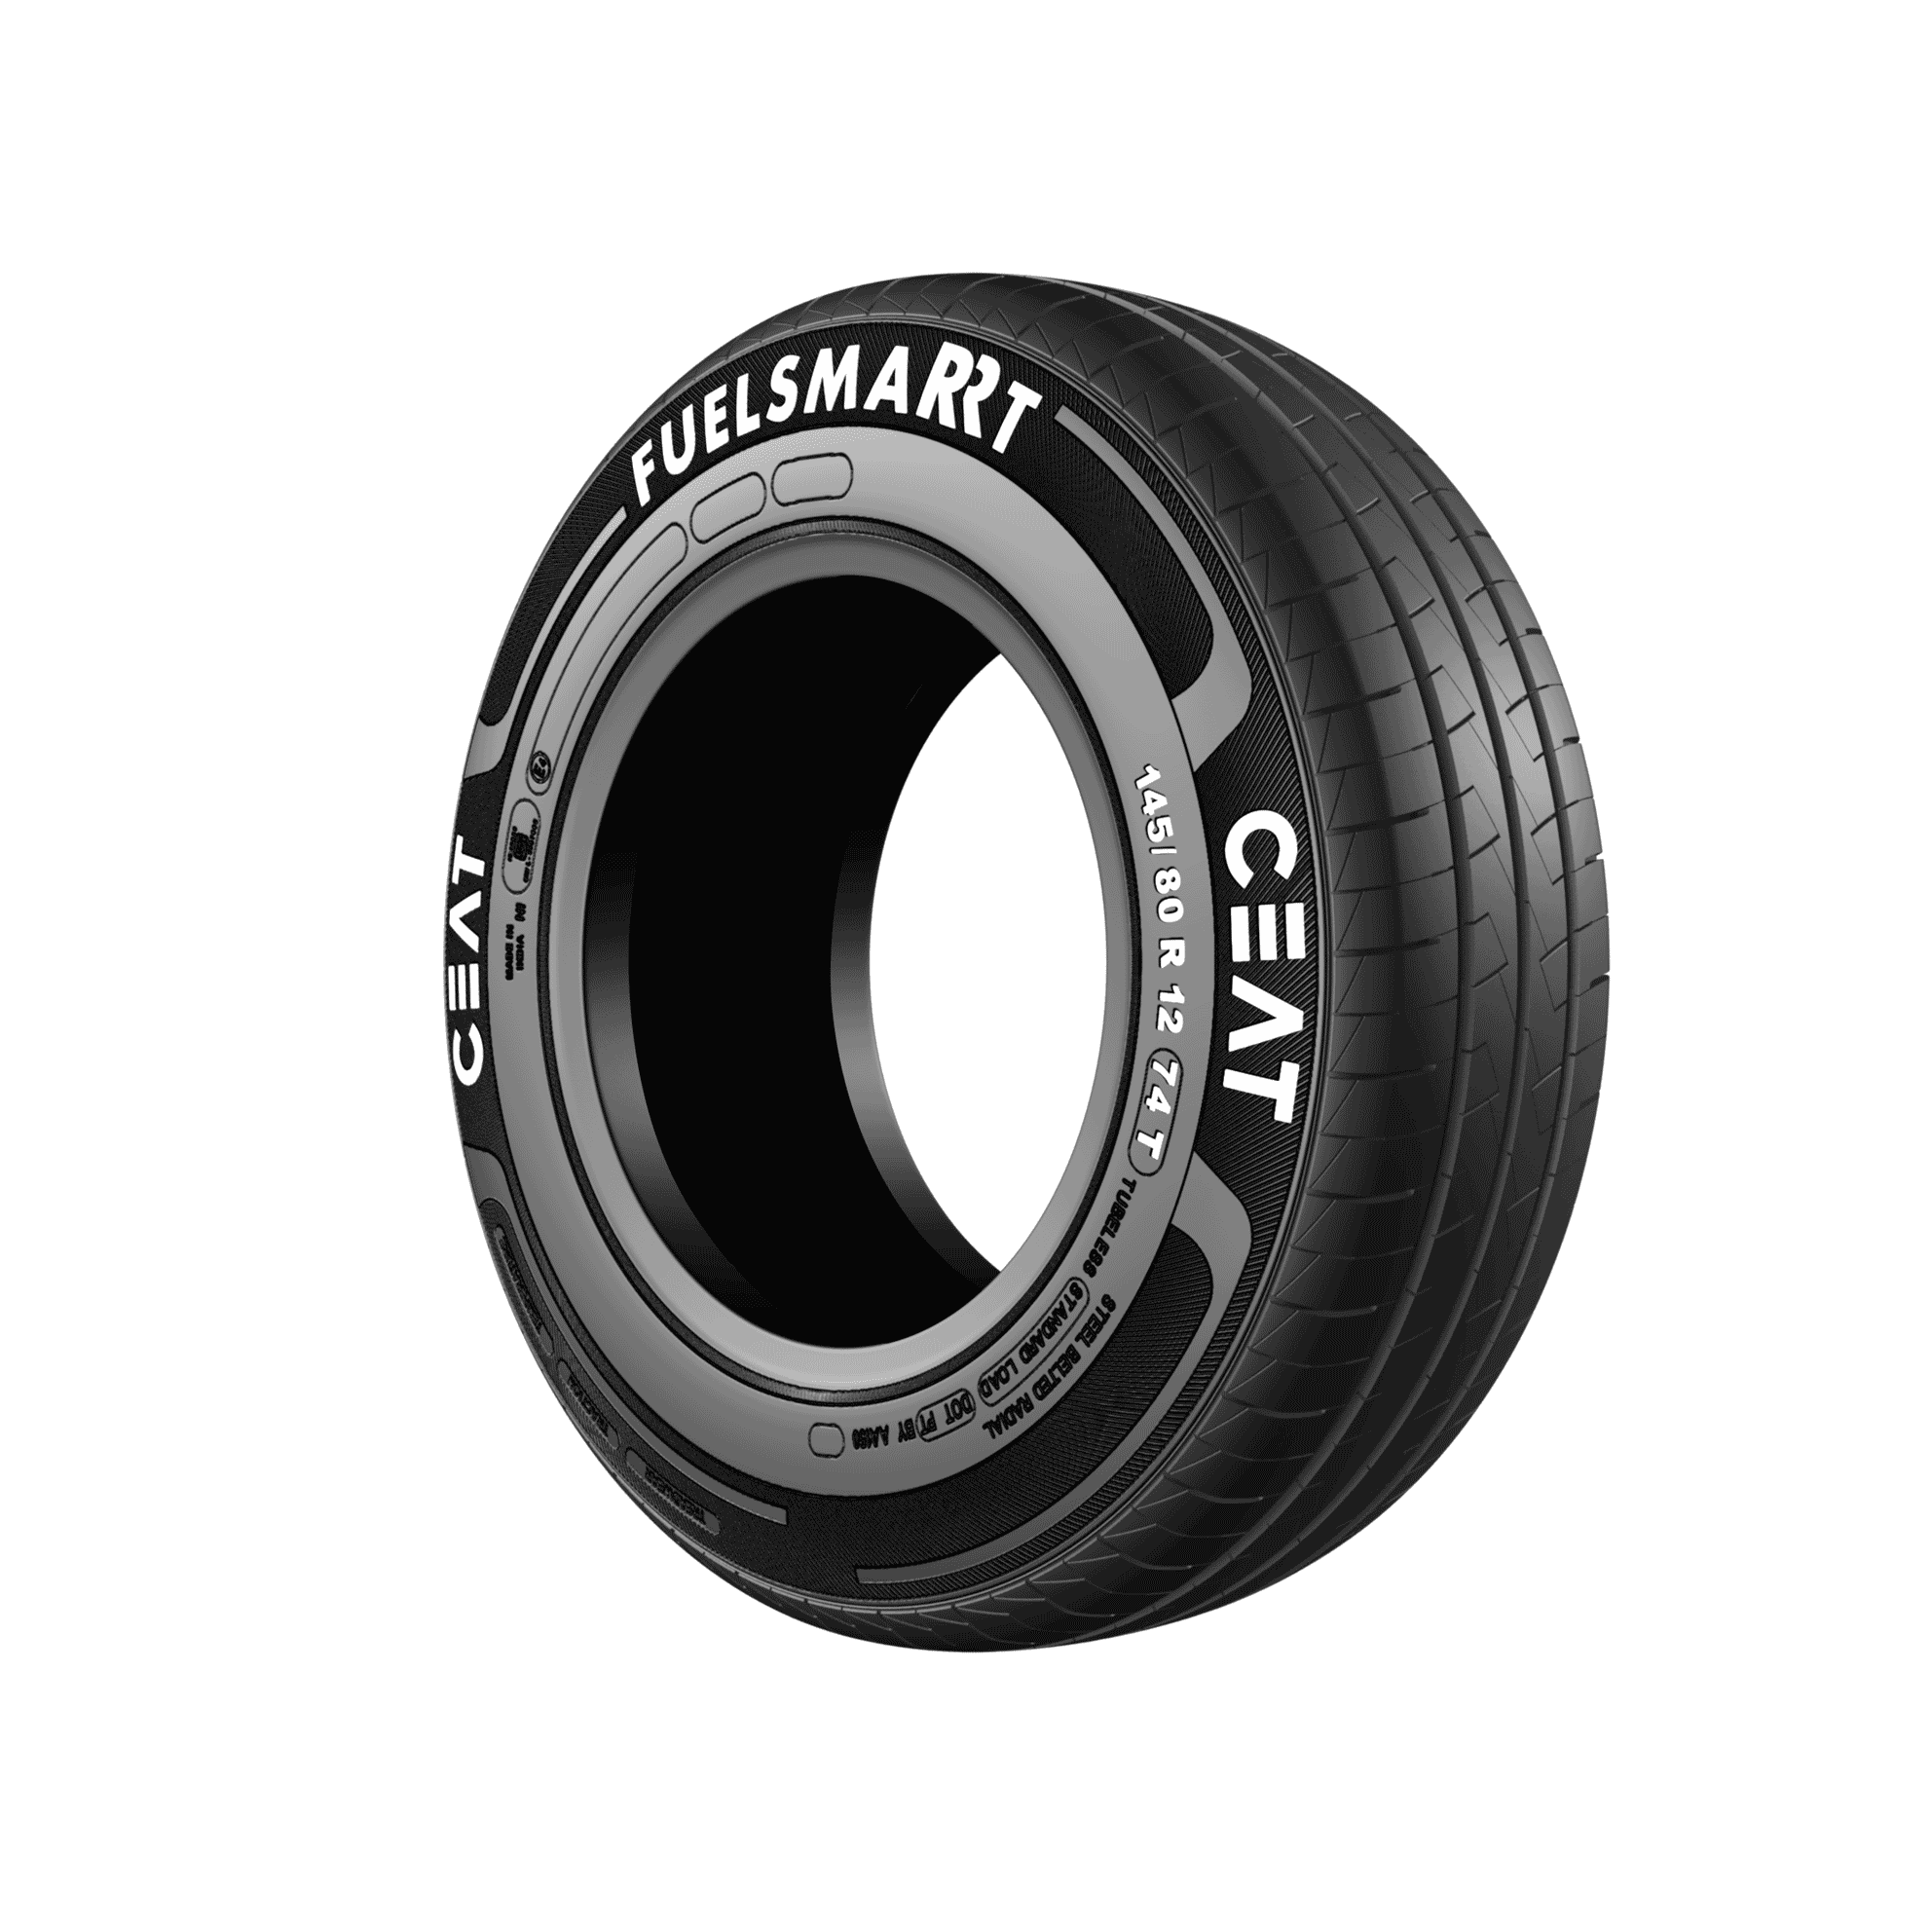 CEAT FUEL SMARRT 155/65 R 14 Tubeless 75 T Car Tyre